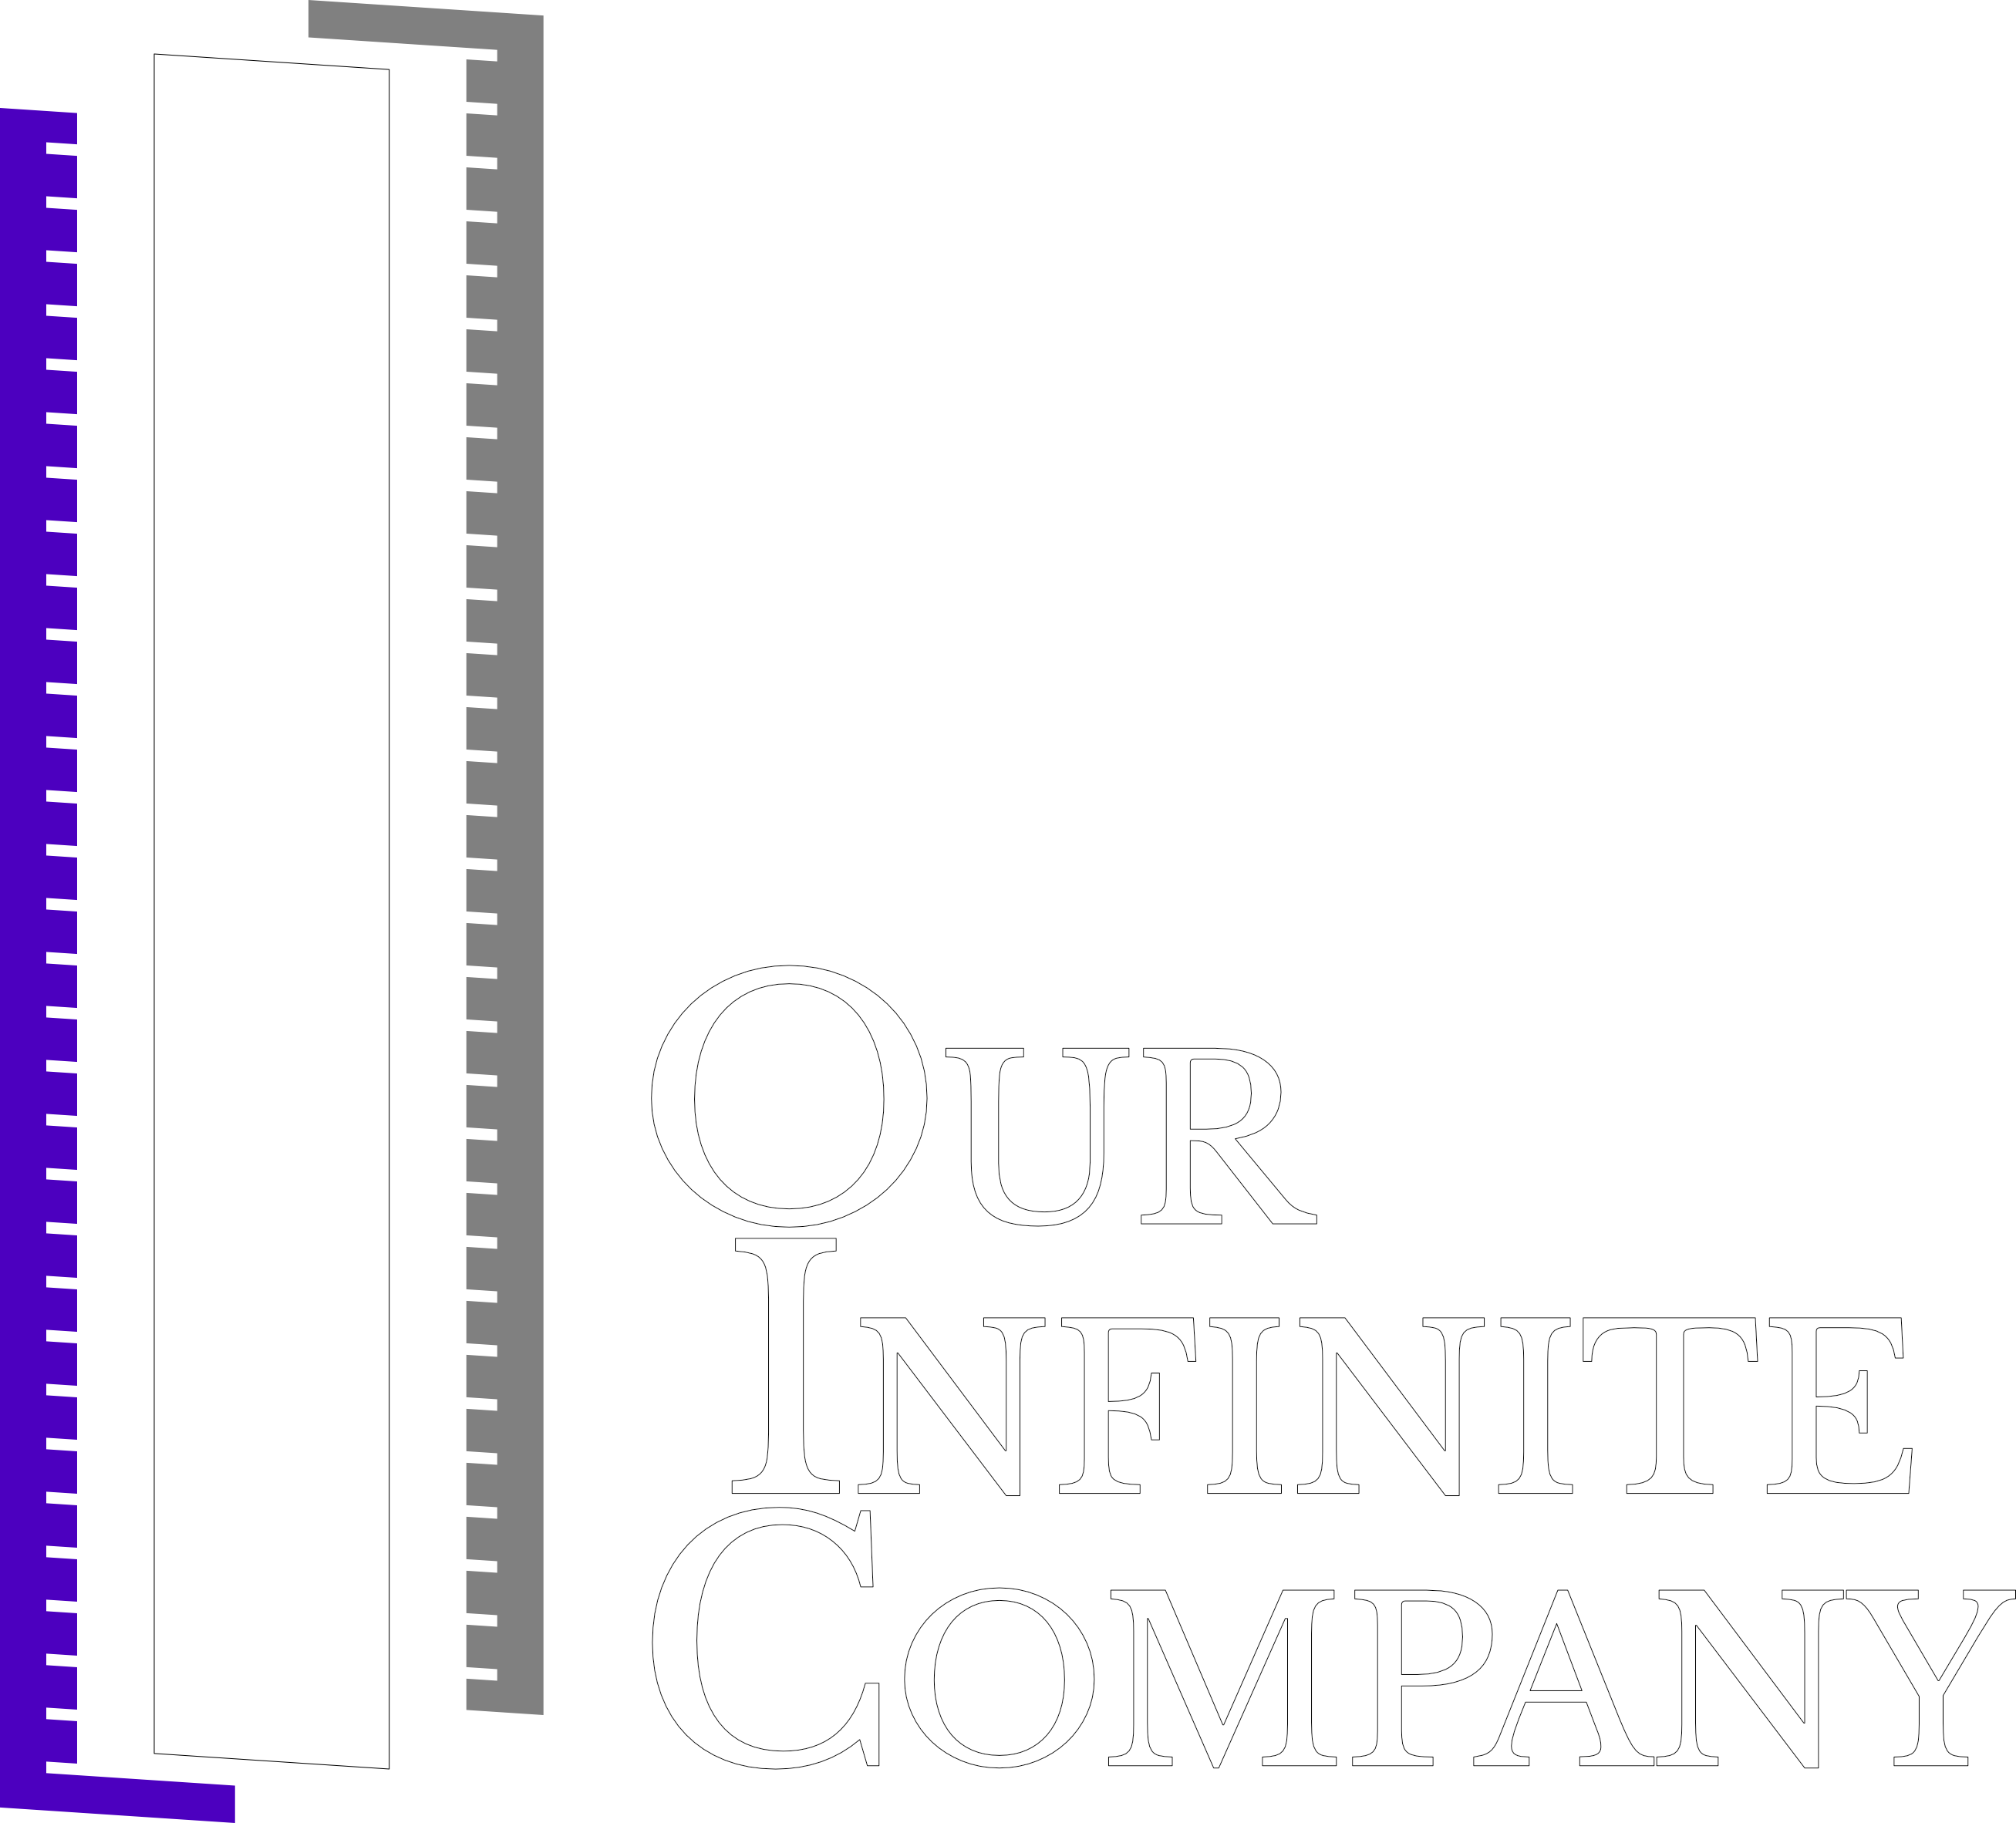 Our Infinite Company